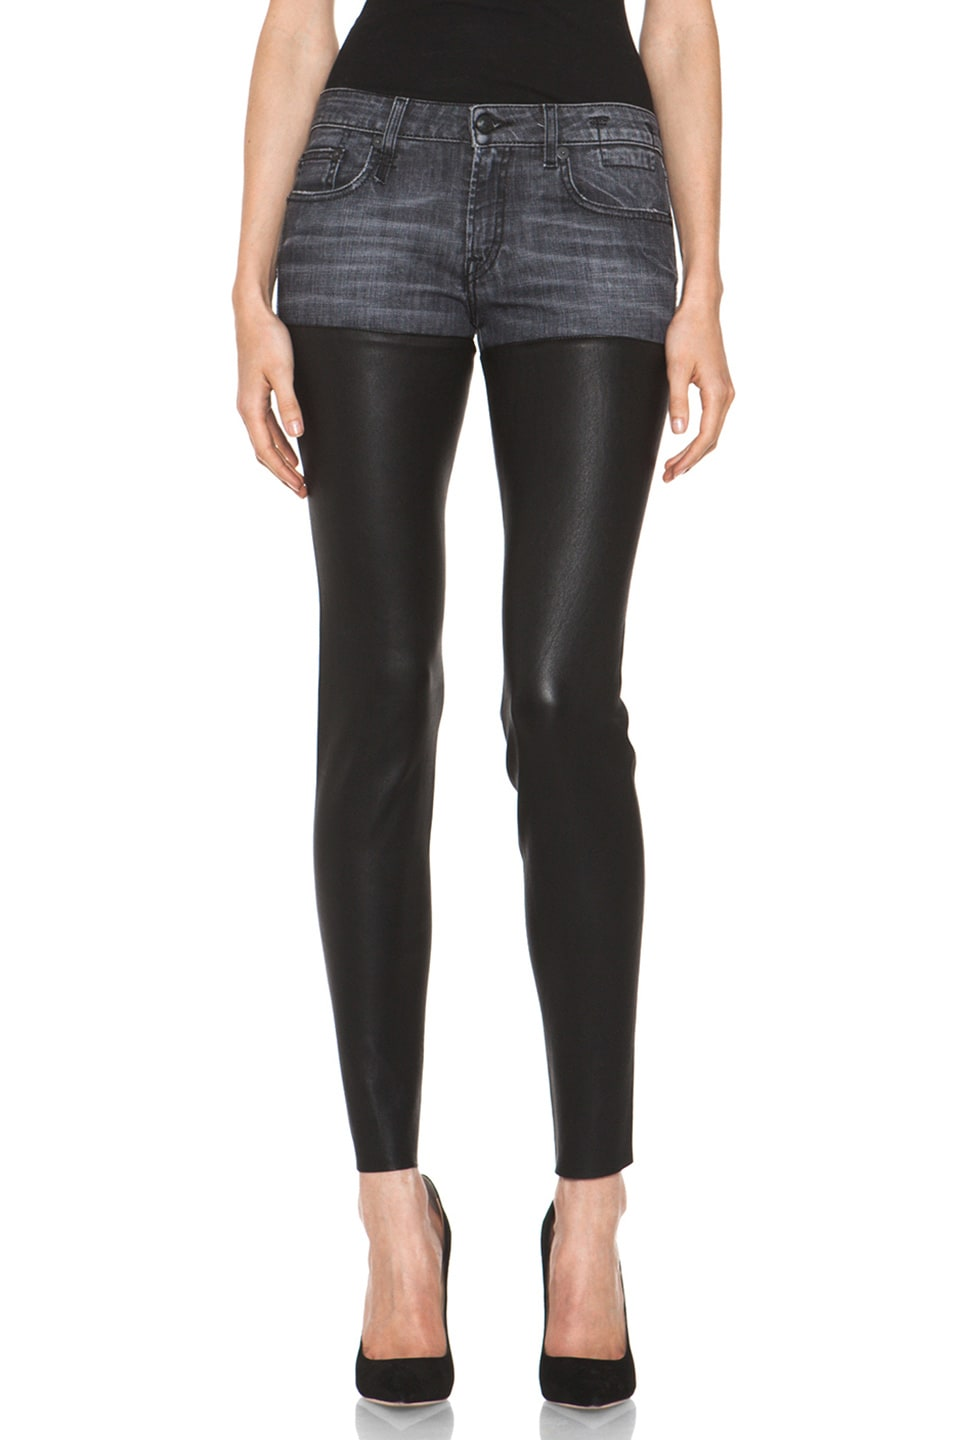 Image 1 of R13 Leather Chaps Jean in Cross Hatch Black